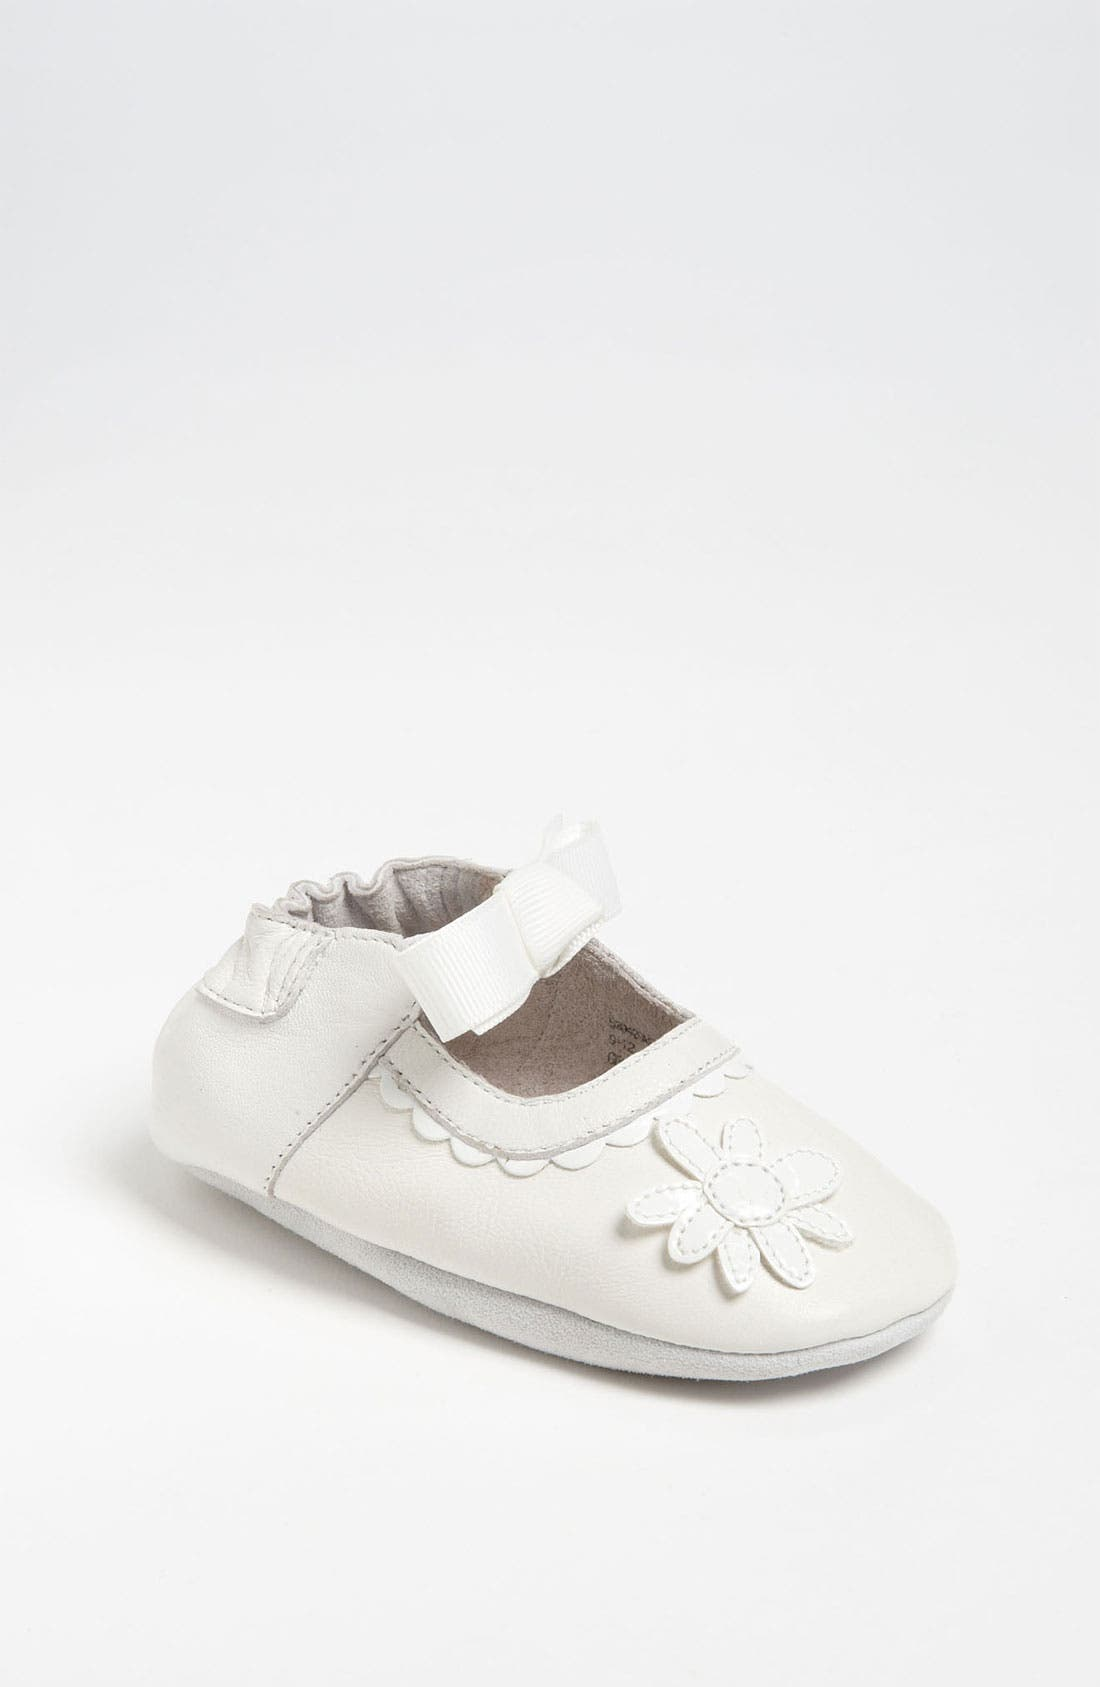 Main Image - Nordstrom Baby 'Daisy' Crib Shoe (Infant)